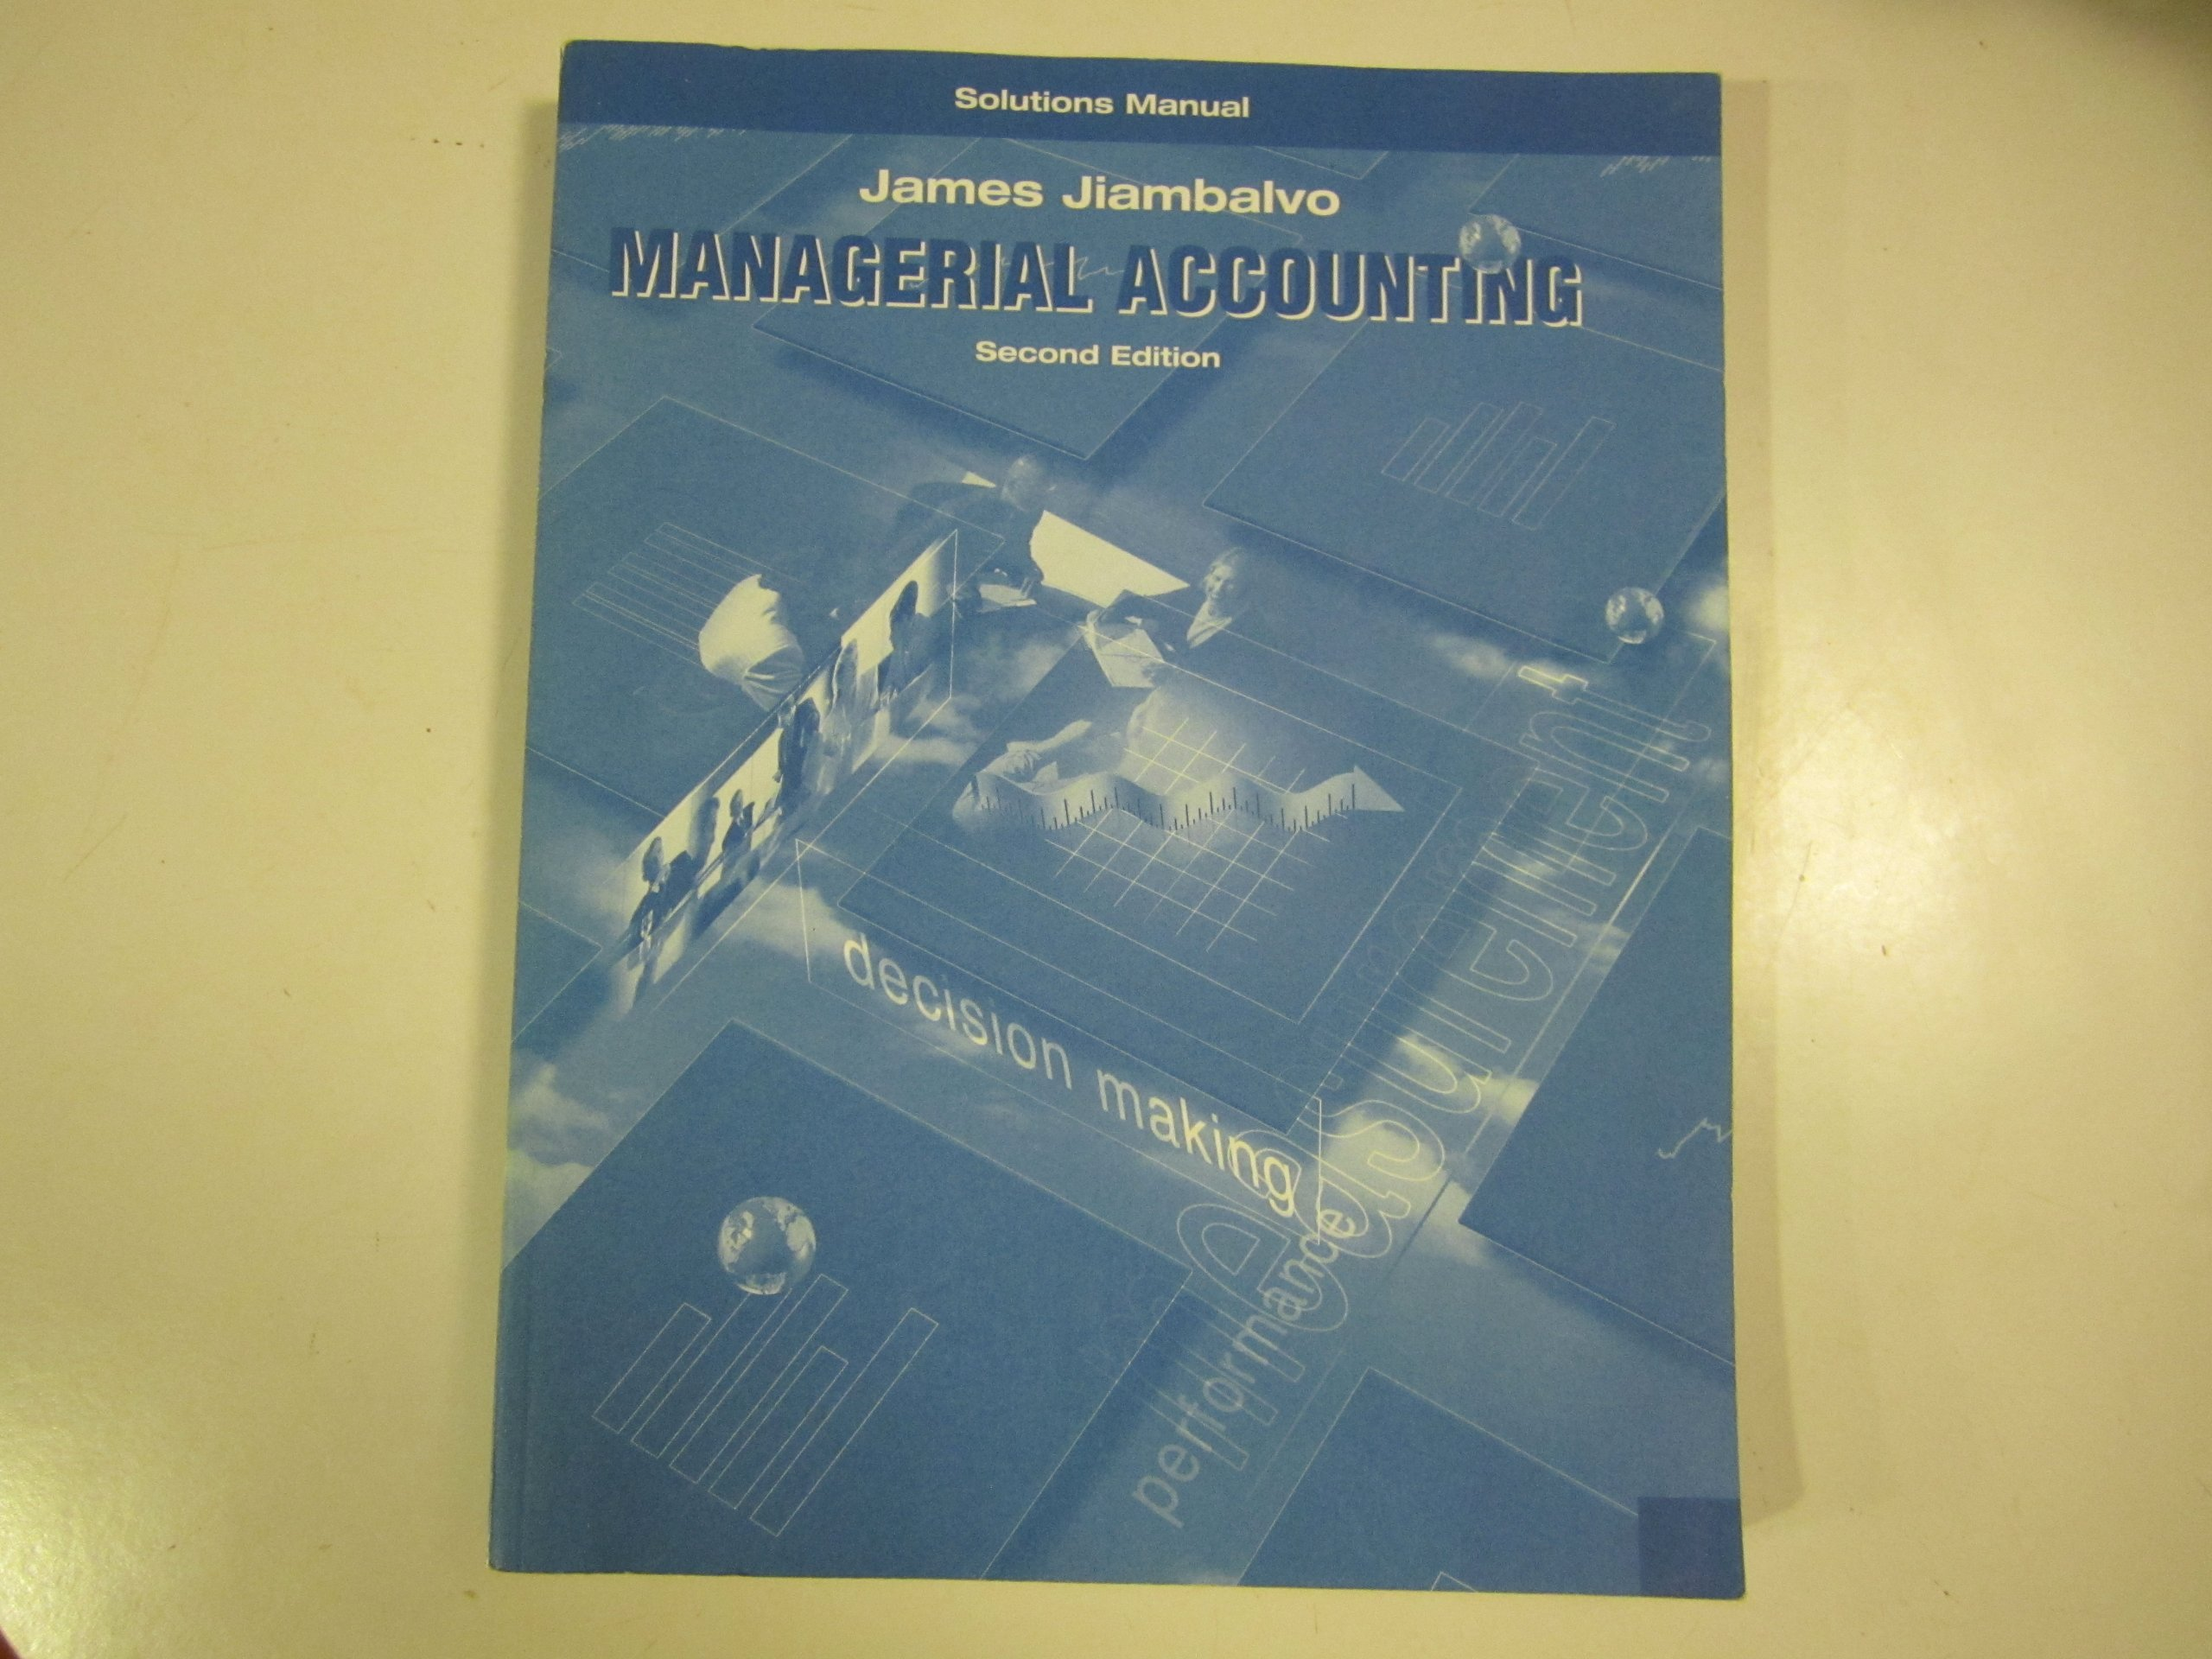 Managerial Accounting: Solutions Manual, 2nd Edition: James Jiambalvo:  9780471484103: Amazon.com: Books